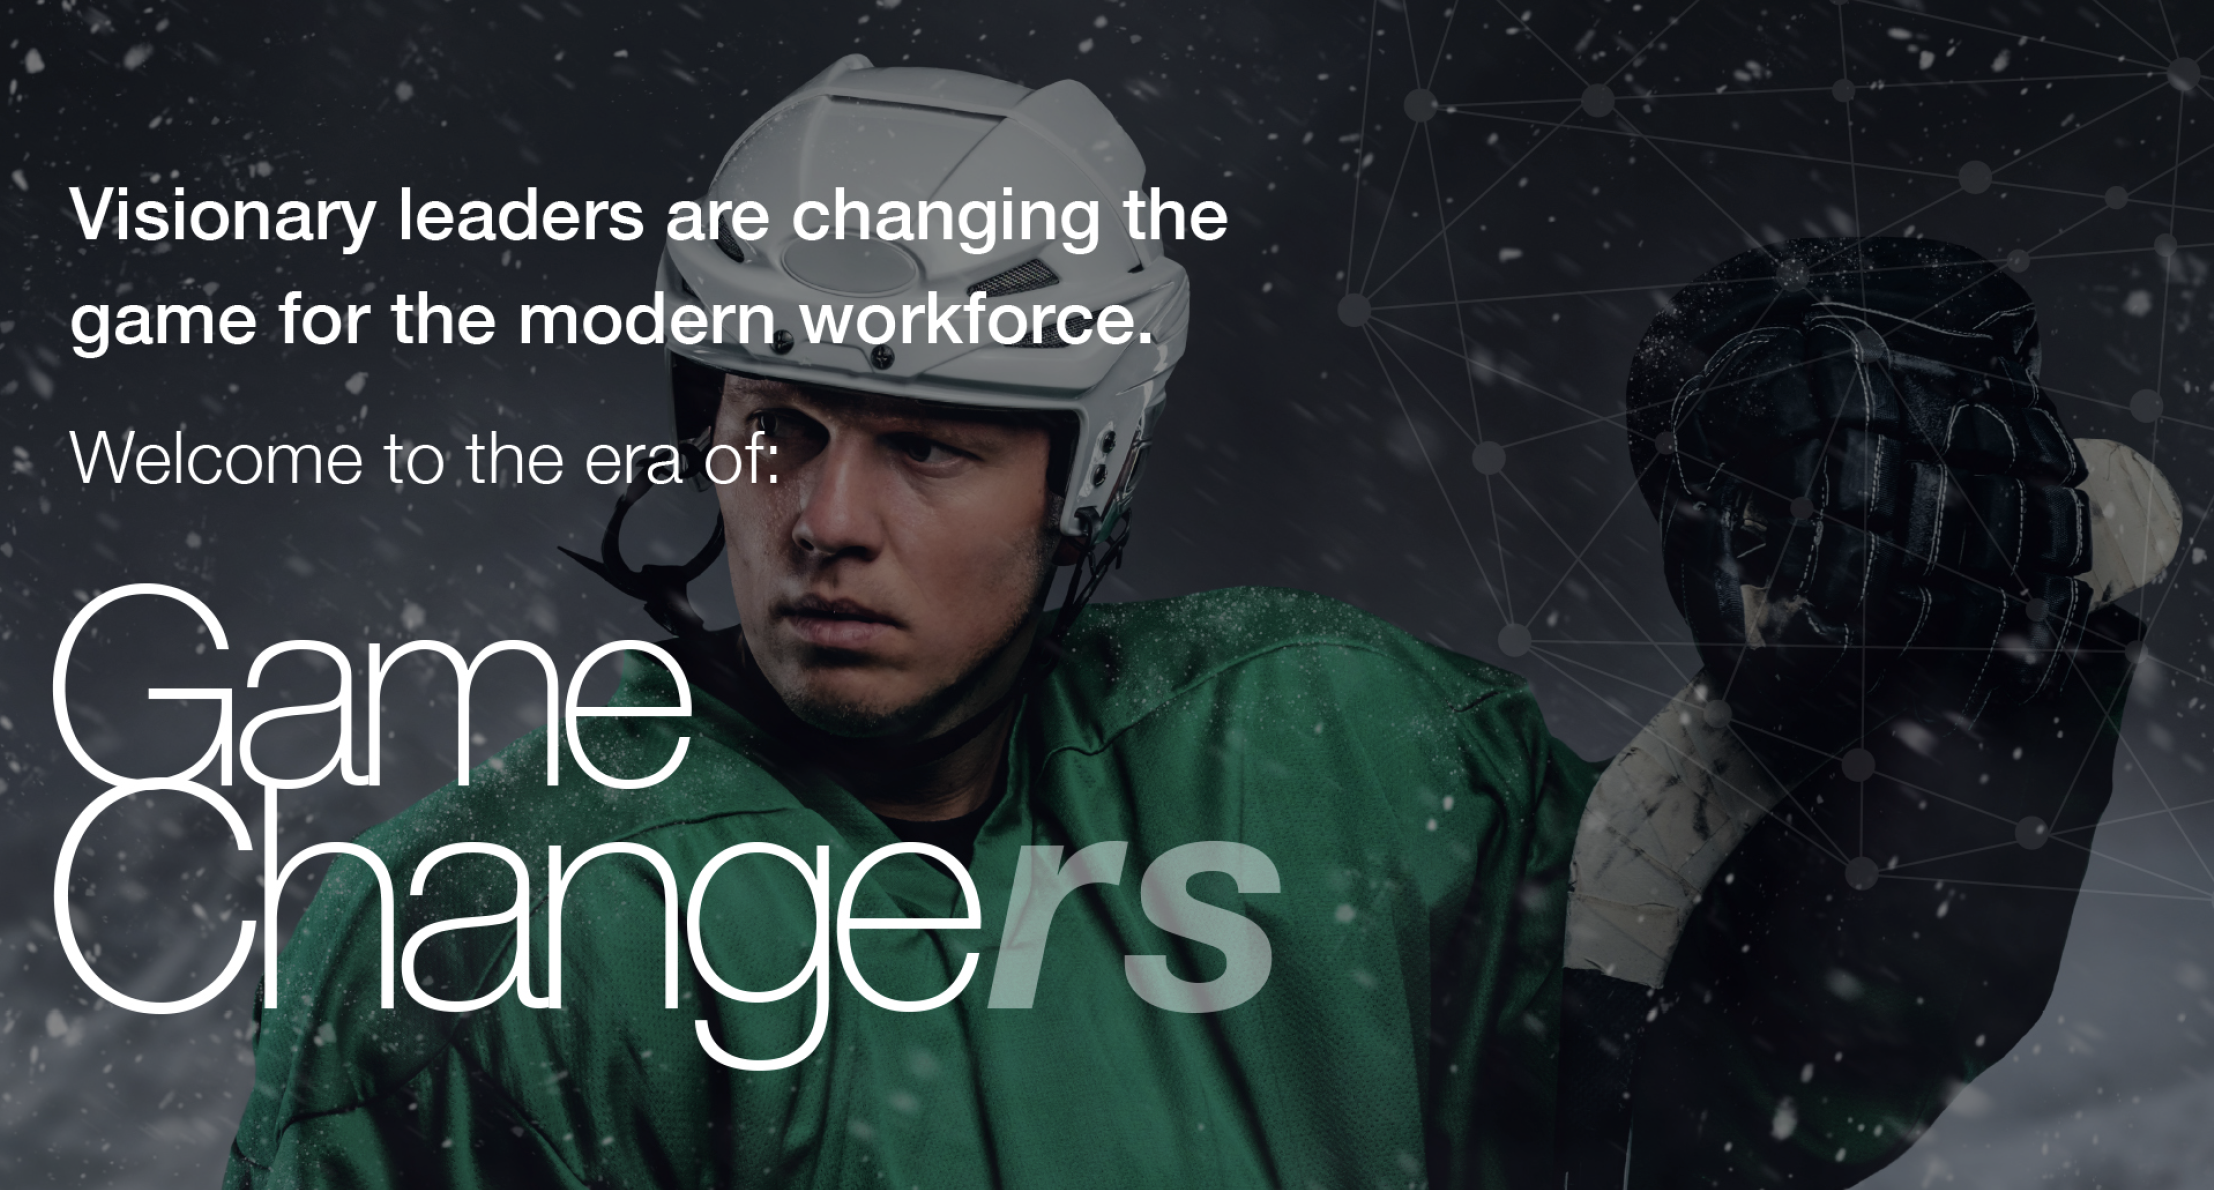 Game Changers infographic